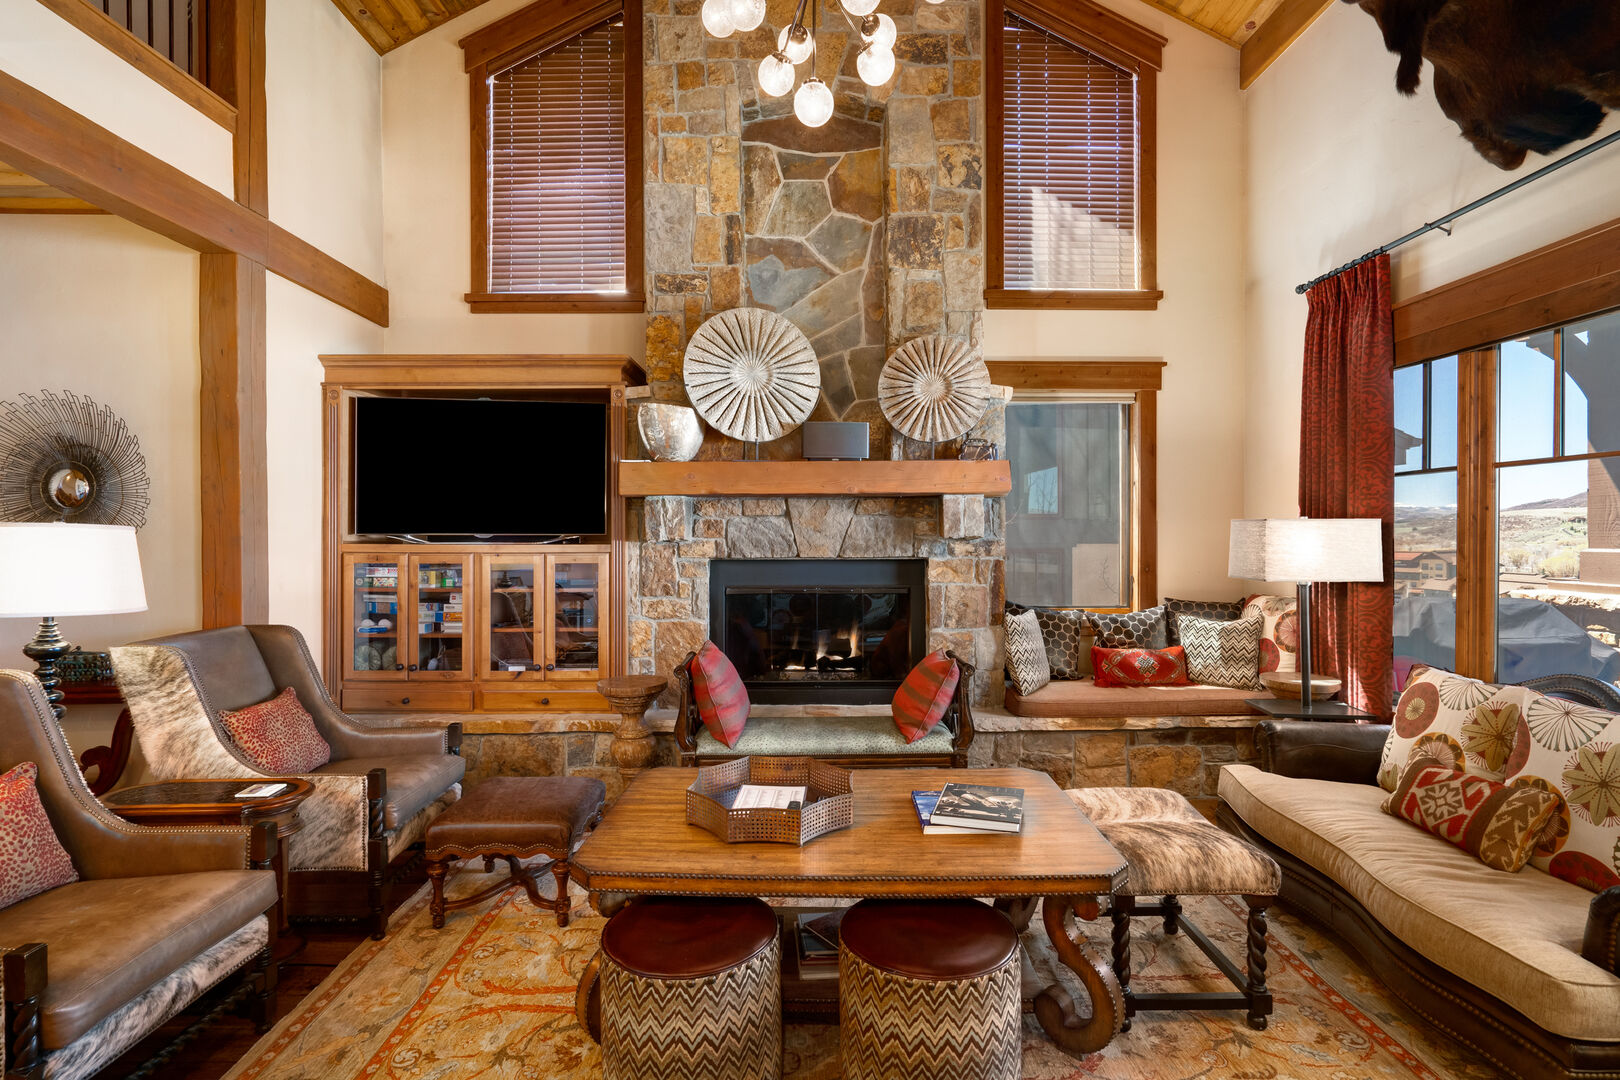 Abundant cozy seating in the living space.